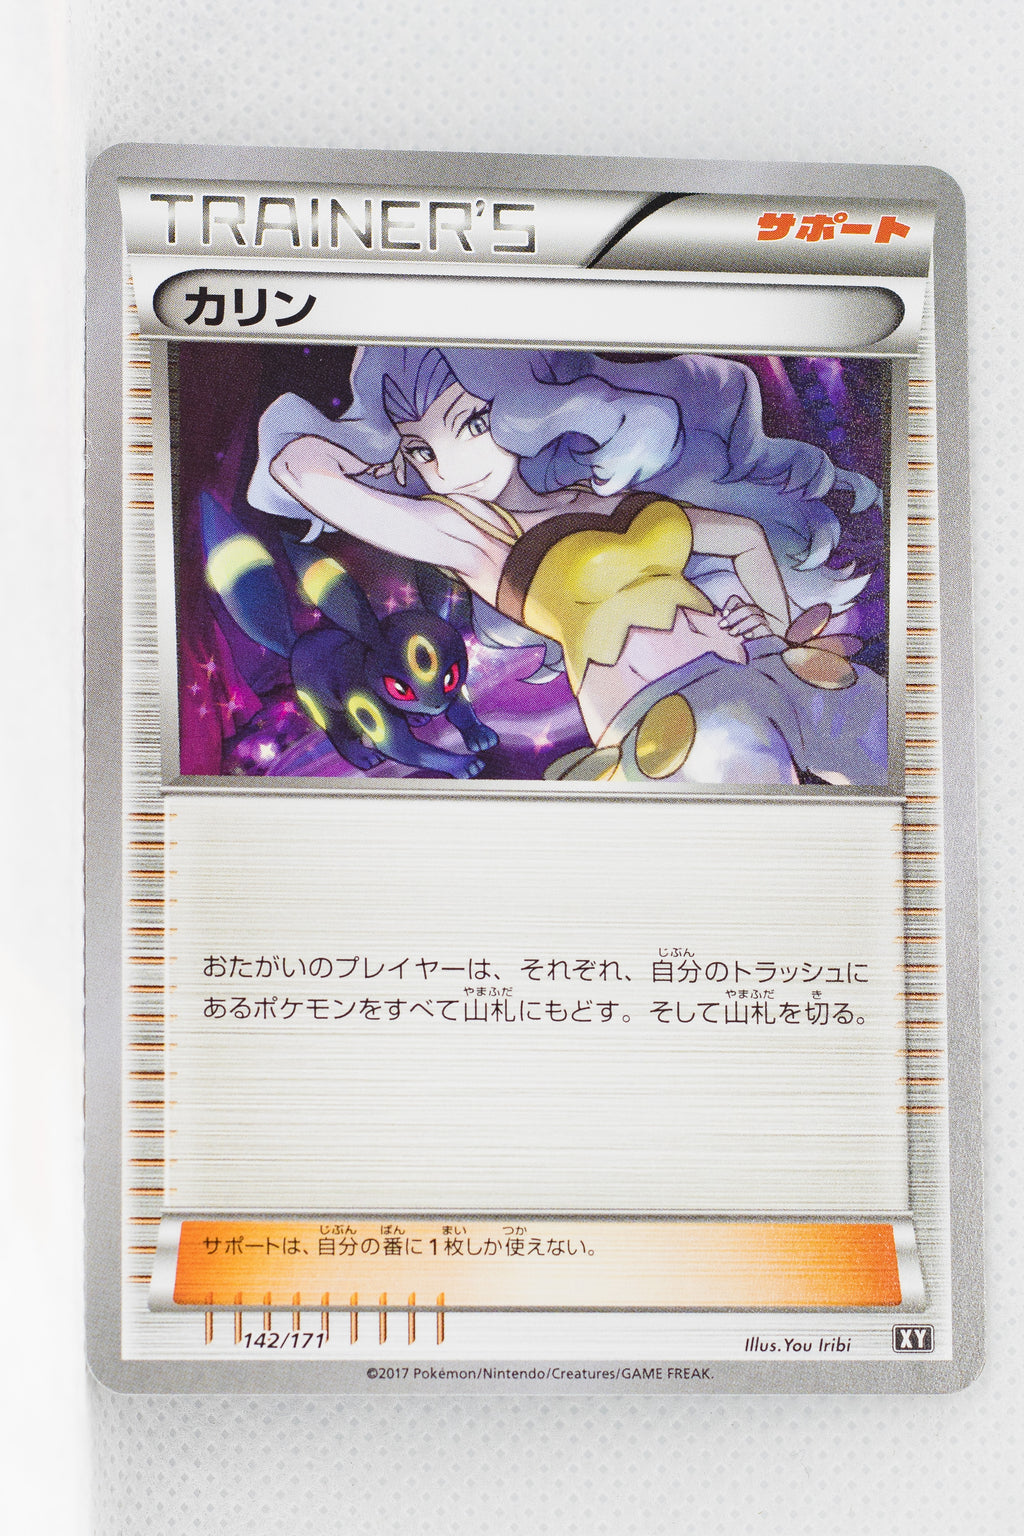 The Best of XY 142/171 Karen